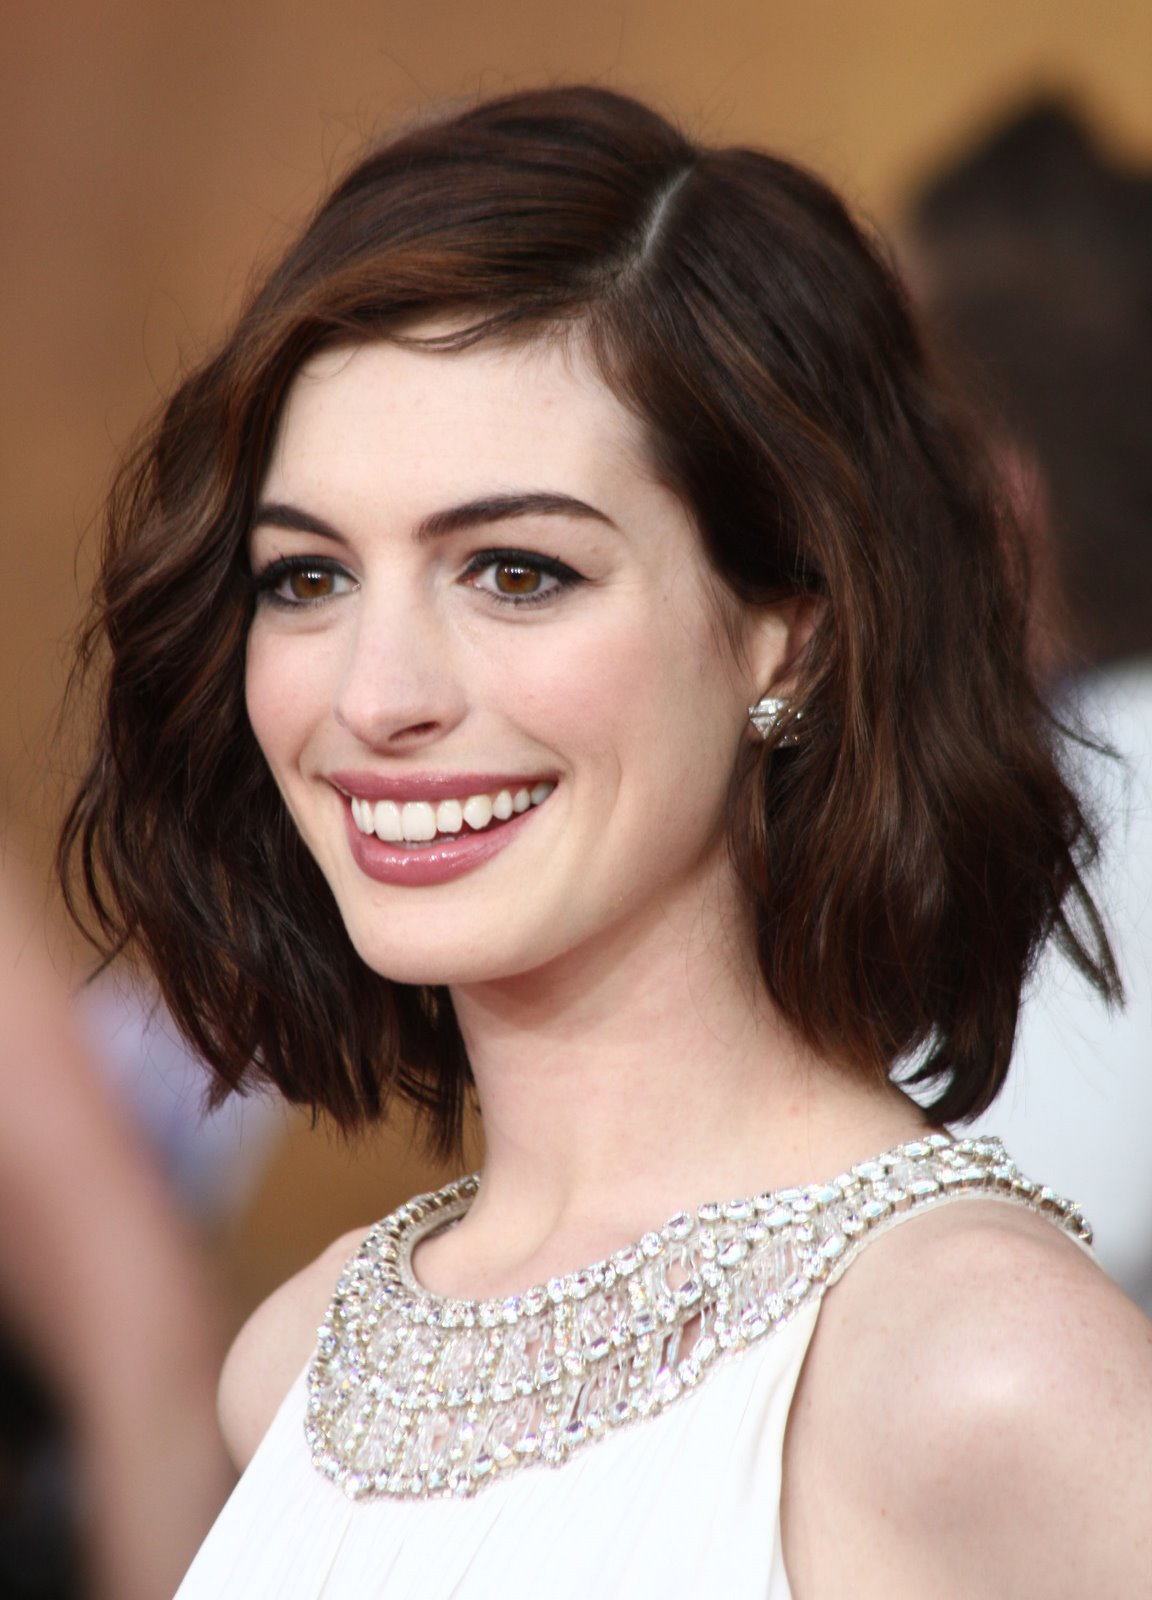 Perm Short Hairstyles for Women 2012